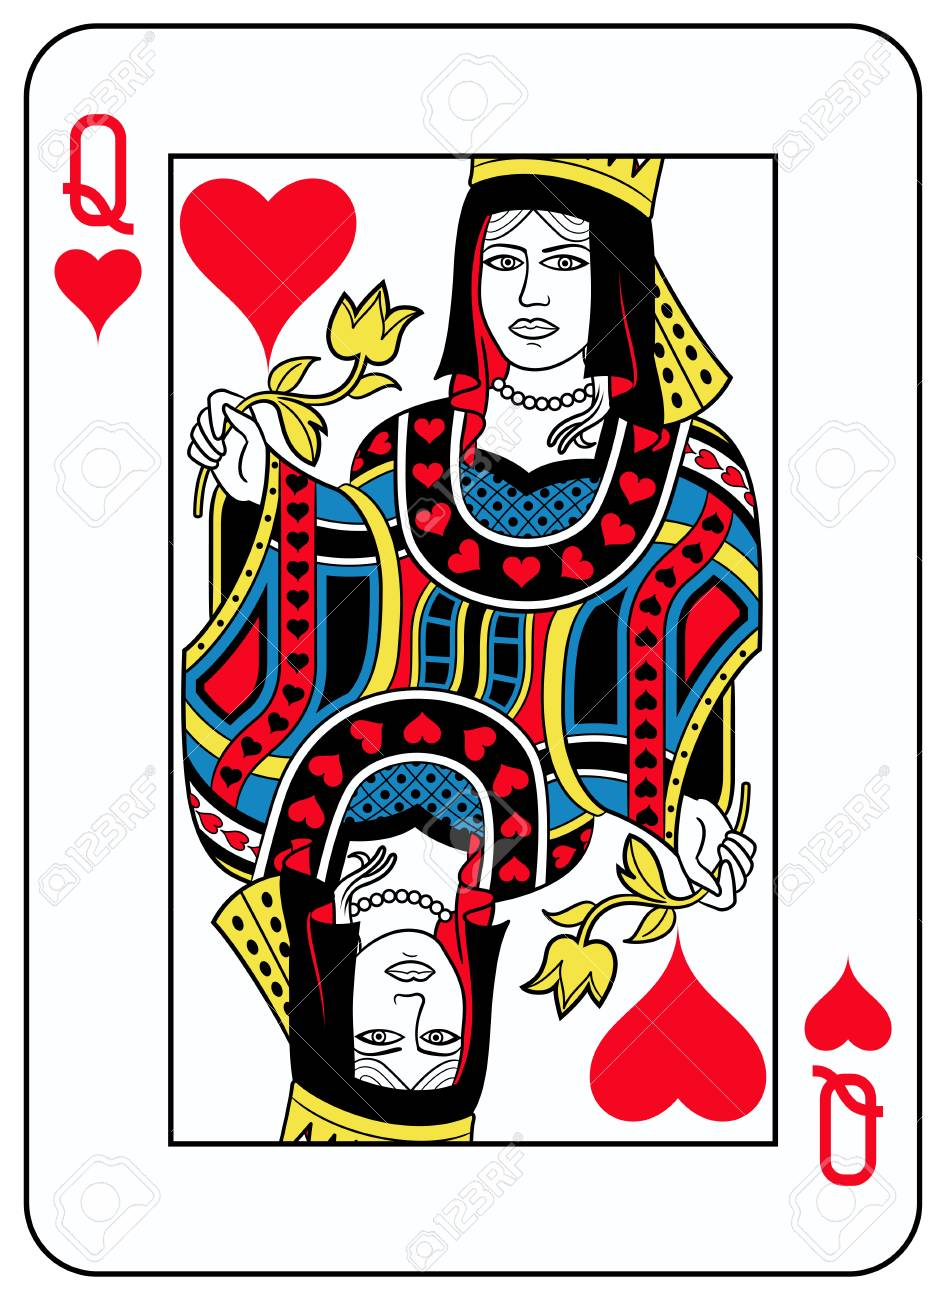 Queen of hearts playingcard inspired by french tradition - 76396879